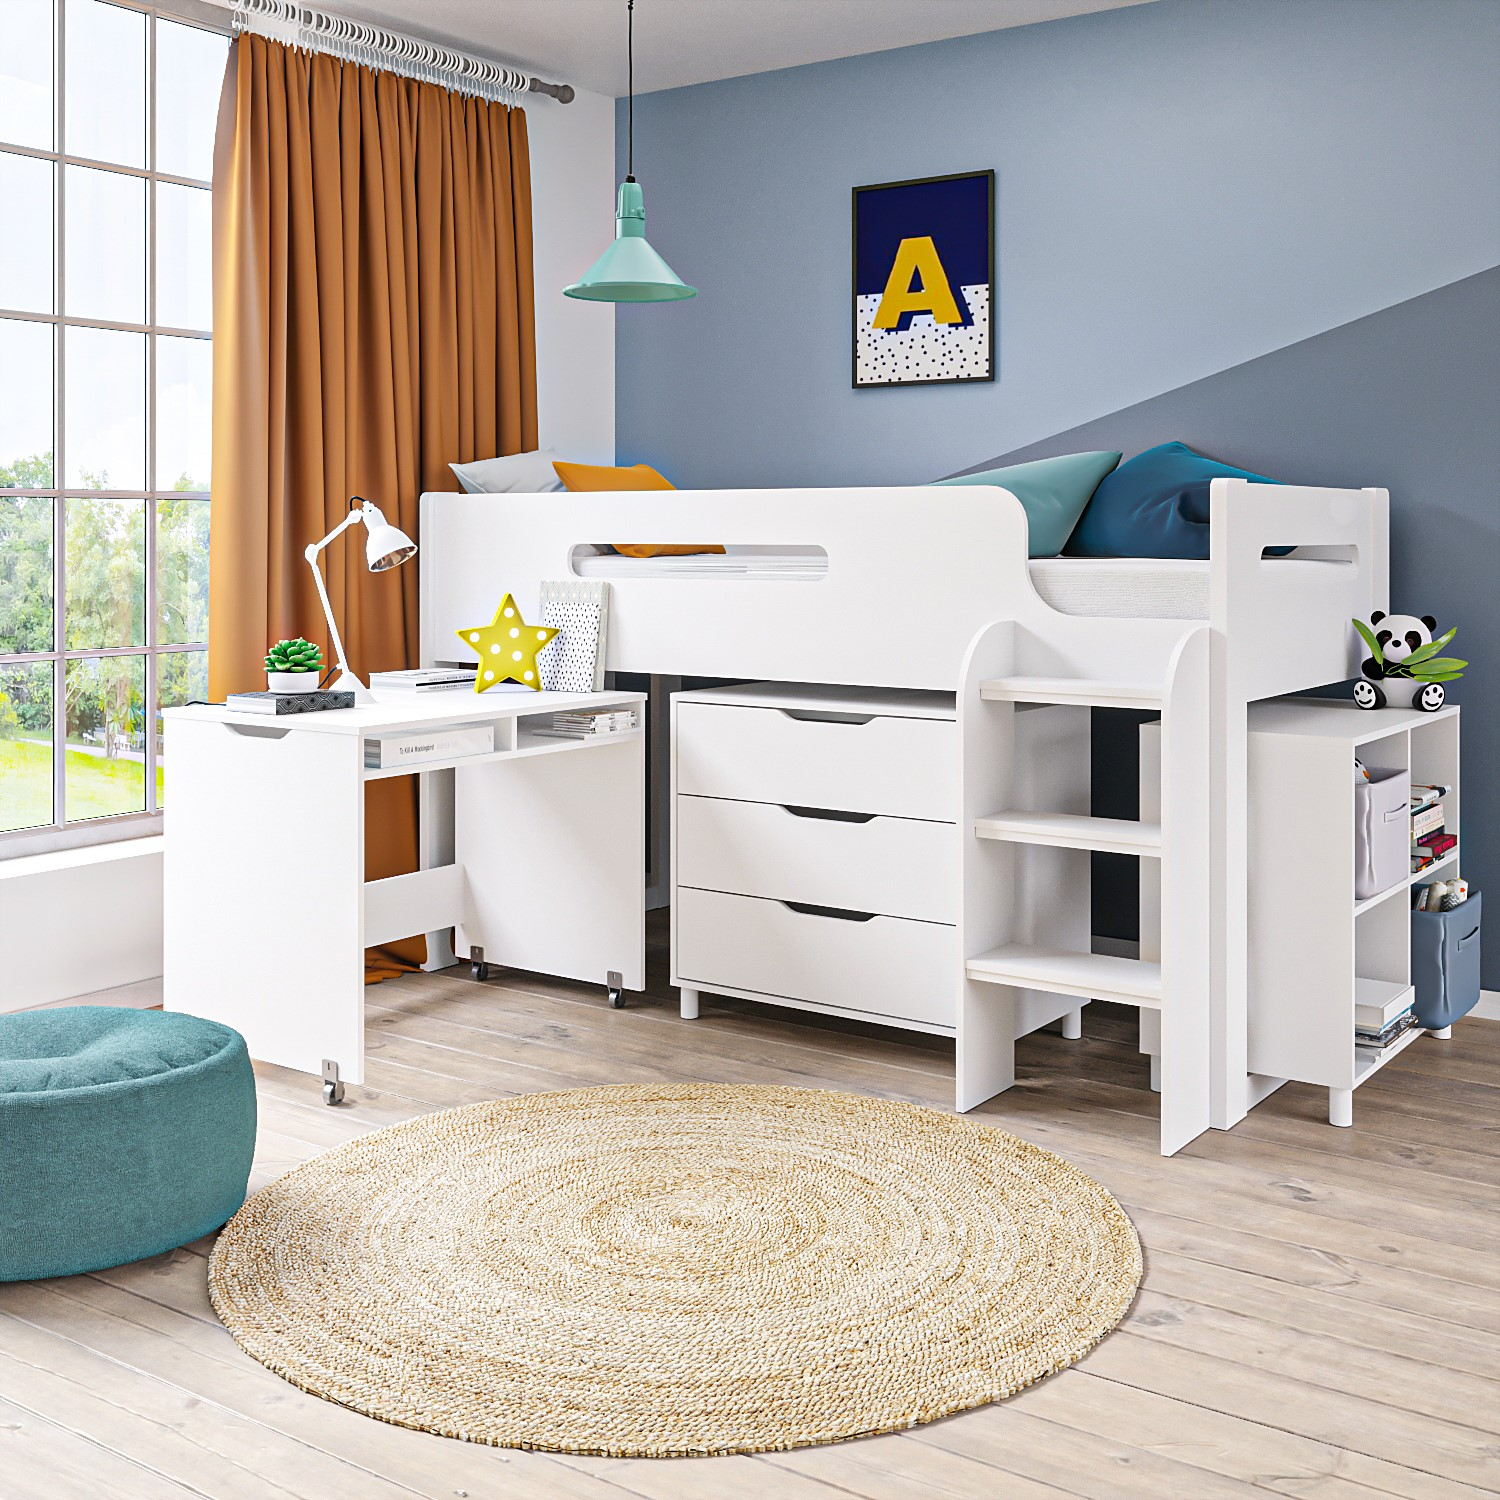 White Cabin Bed Midsleeper + Mattress Options + Includes ...